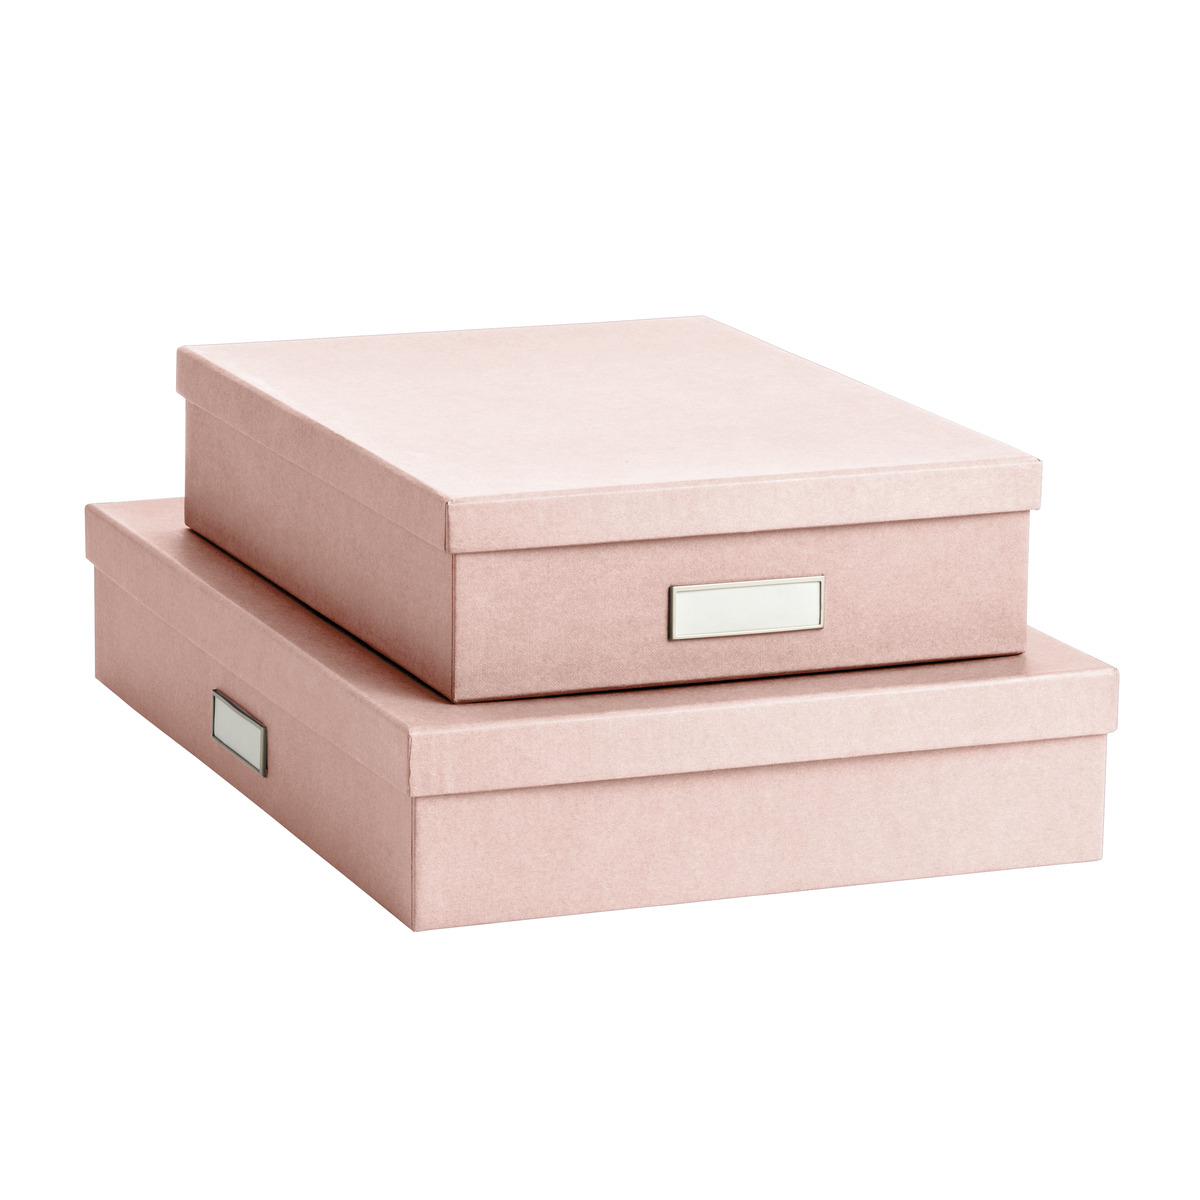 Bigso Blush Stockholm Office Storage Boxes